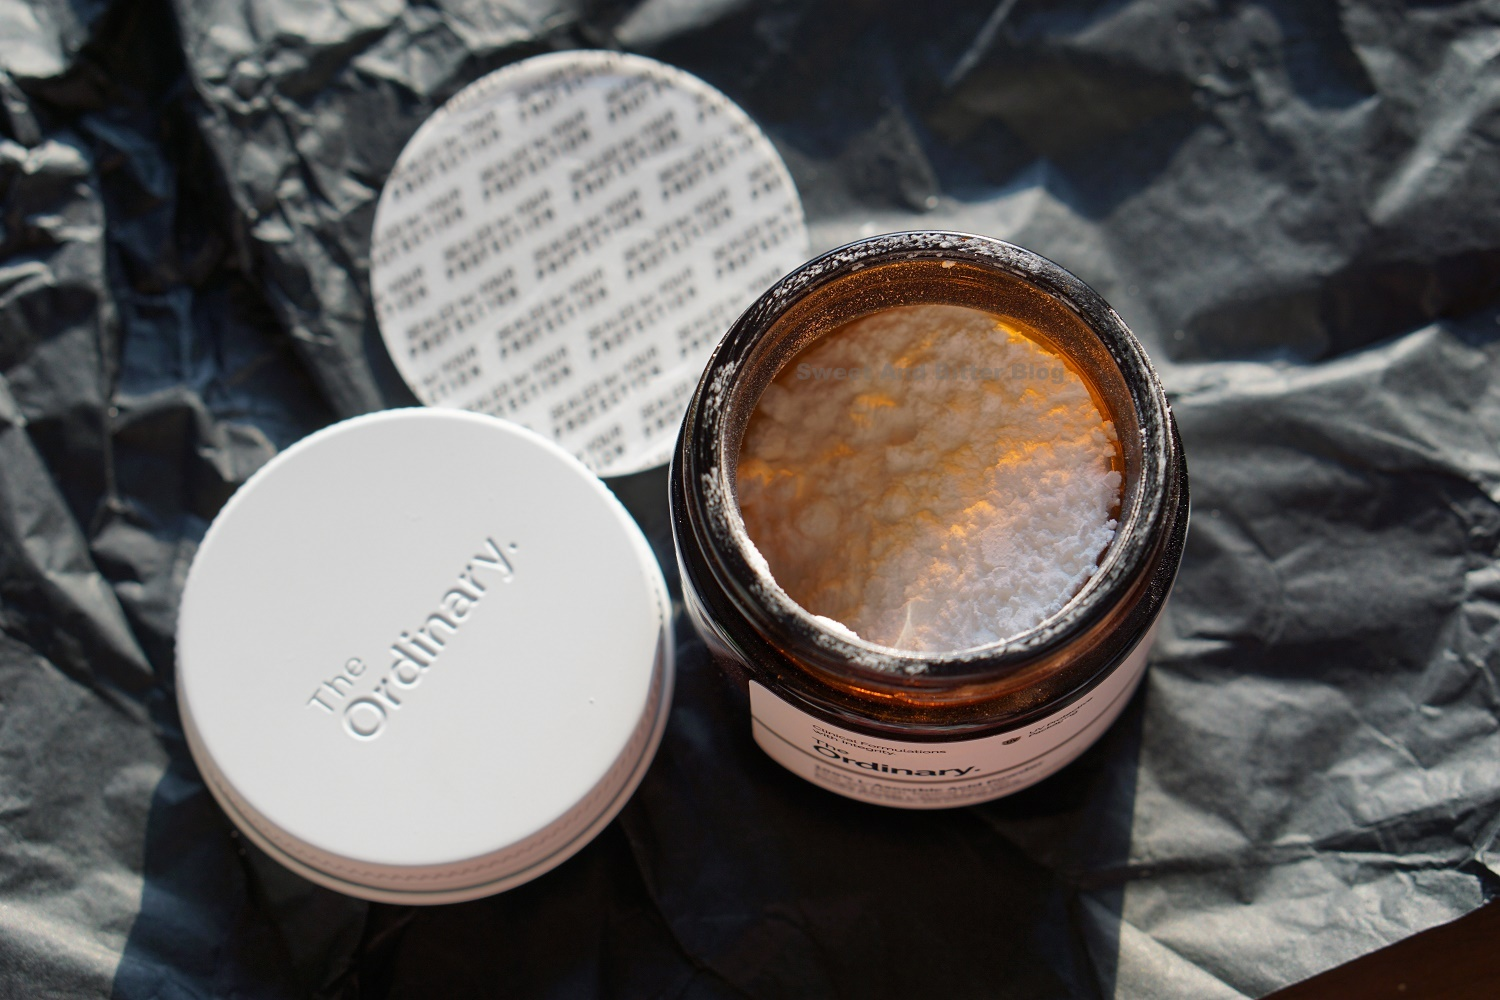 The Ordinary L- Ascorbic Acid Powder Review Indian Skin Texture GlassJar